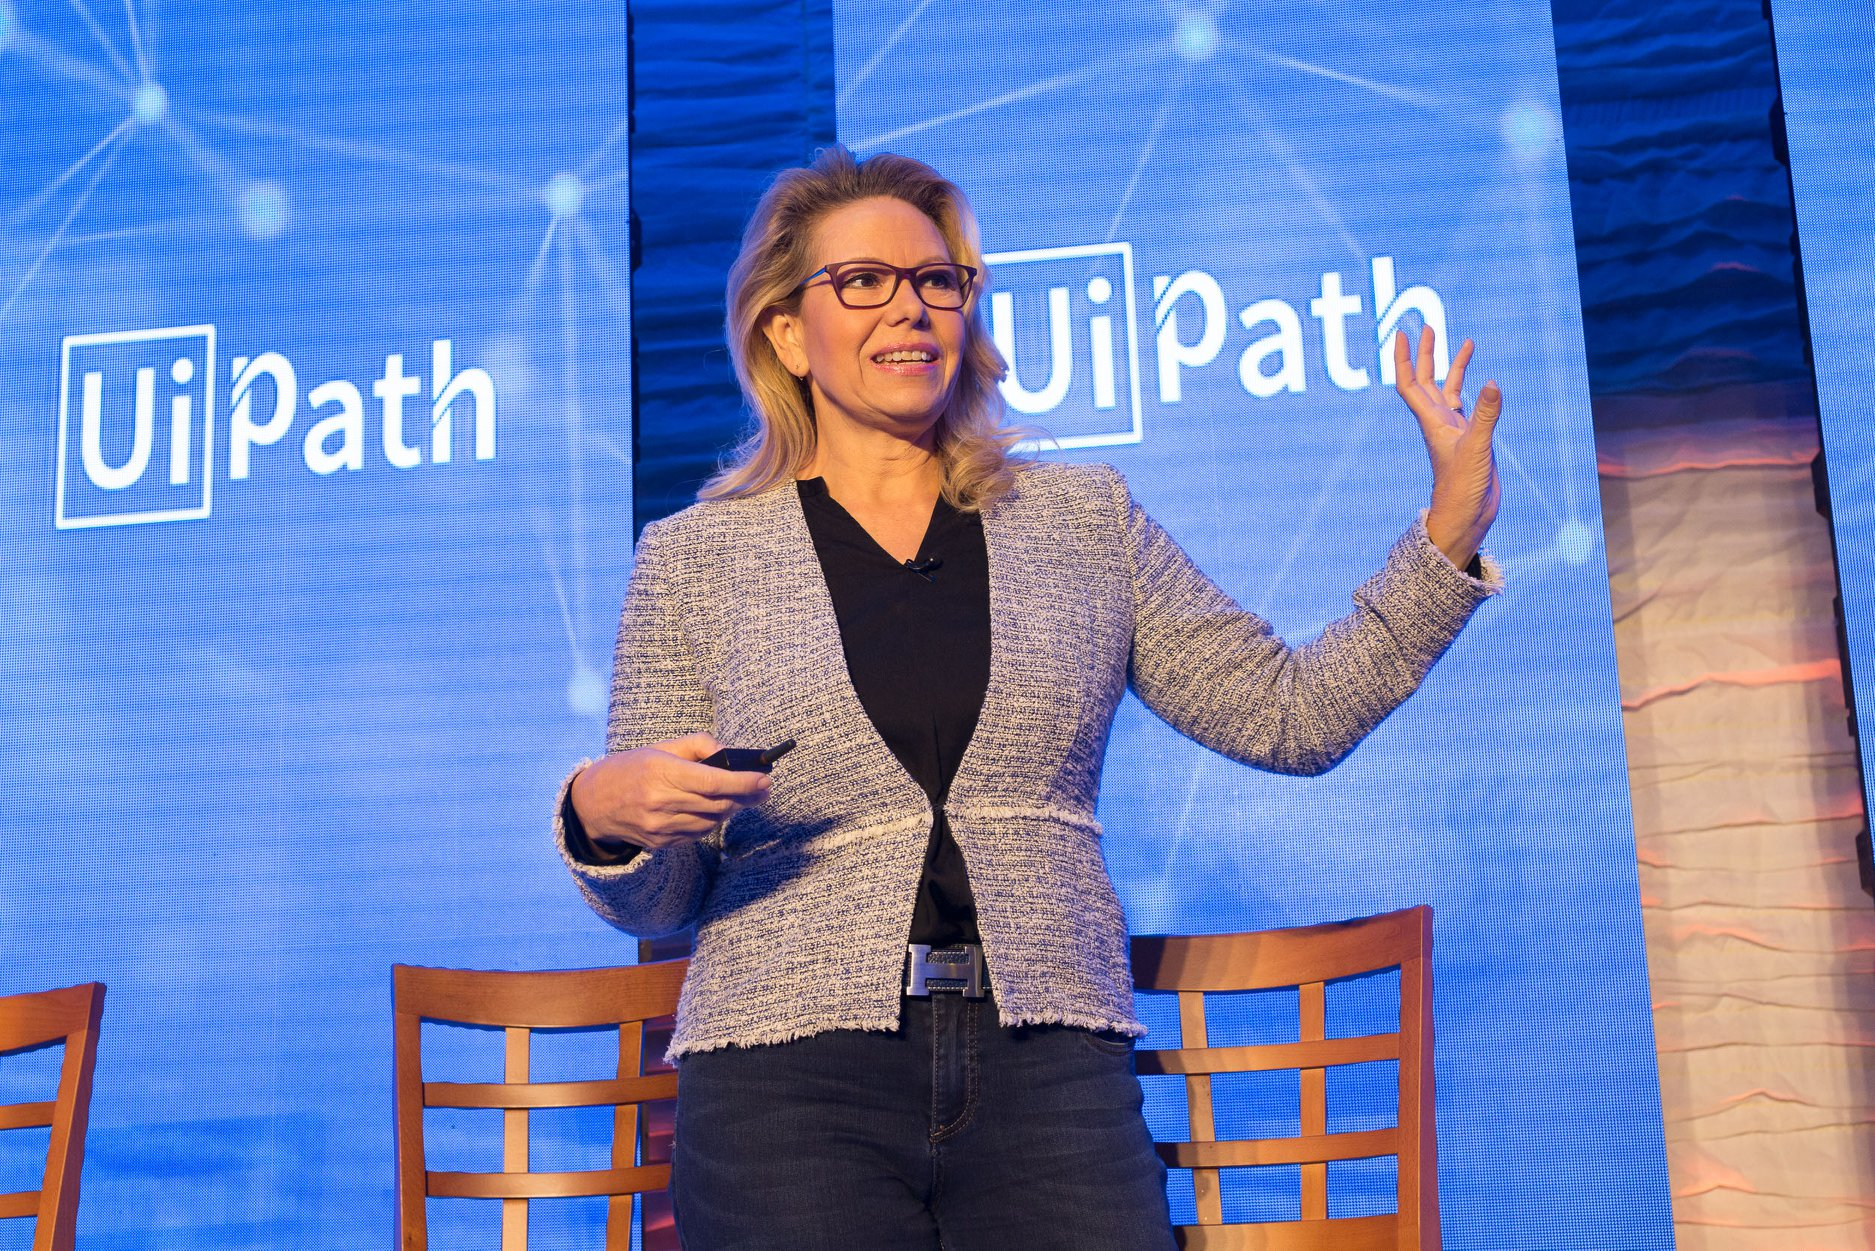 uipath-together-new-york-15